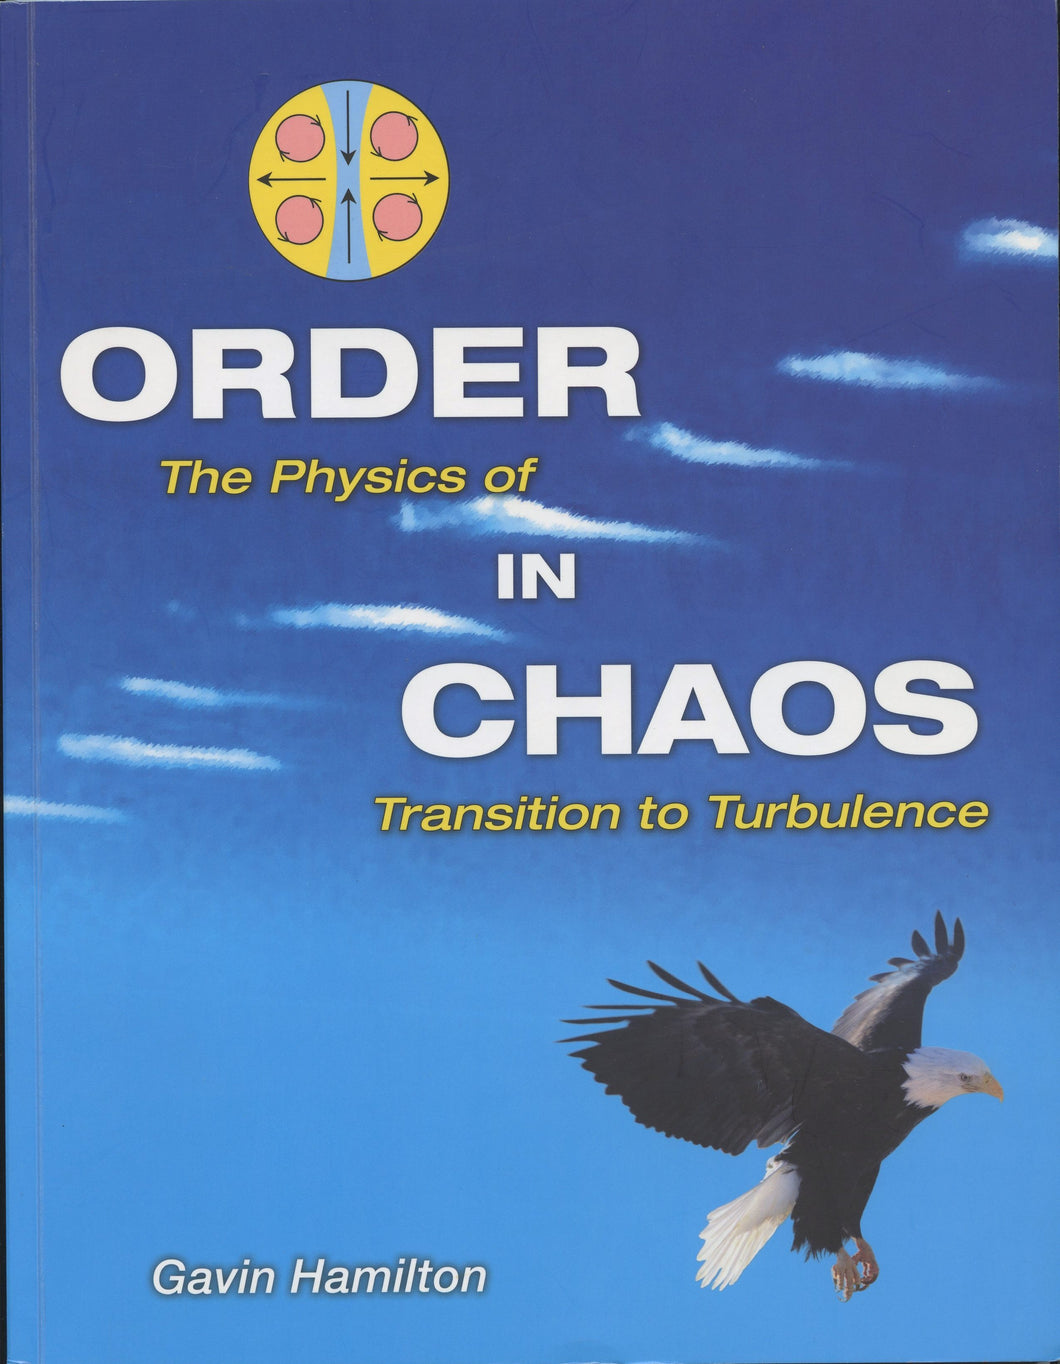 Order in Chaos: The Physics of Transition to Turbulence